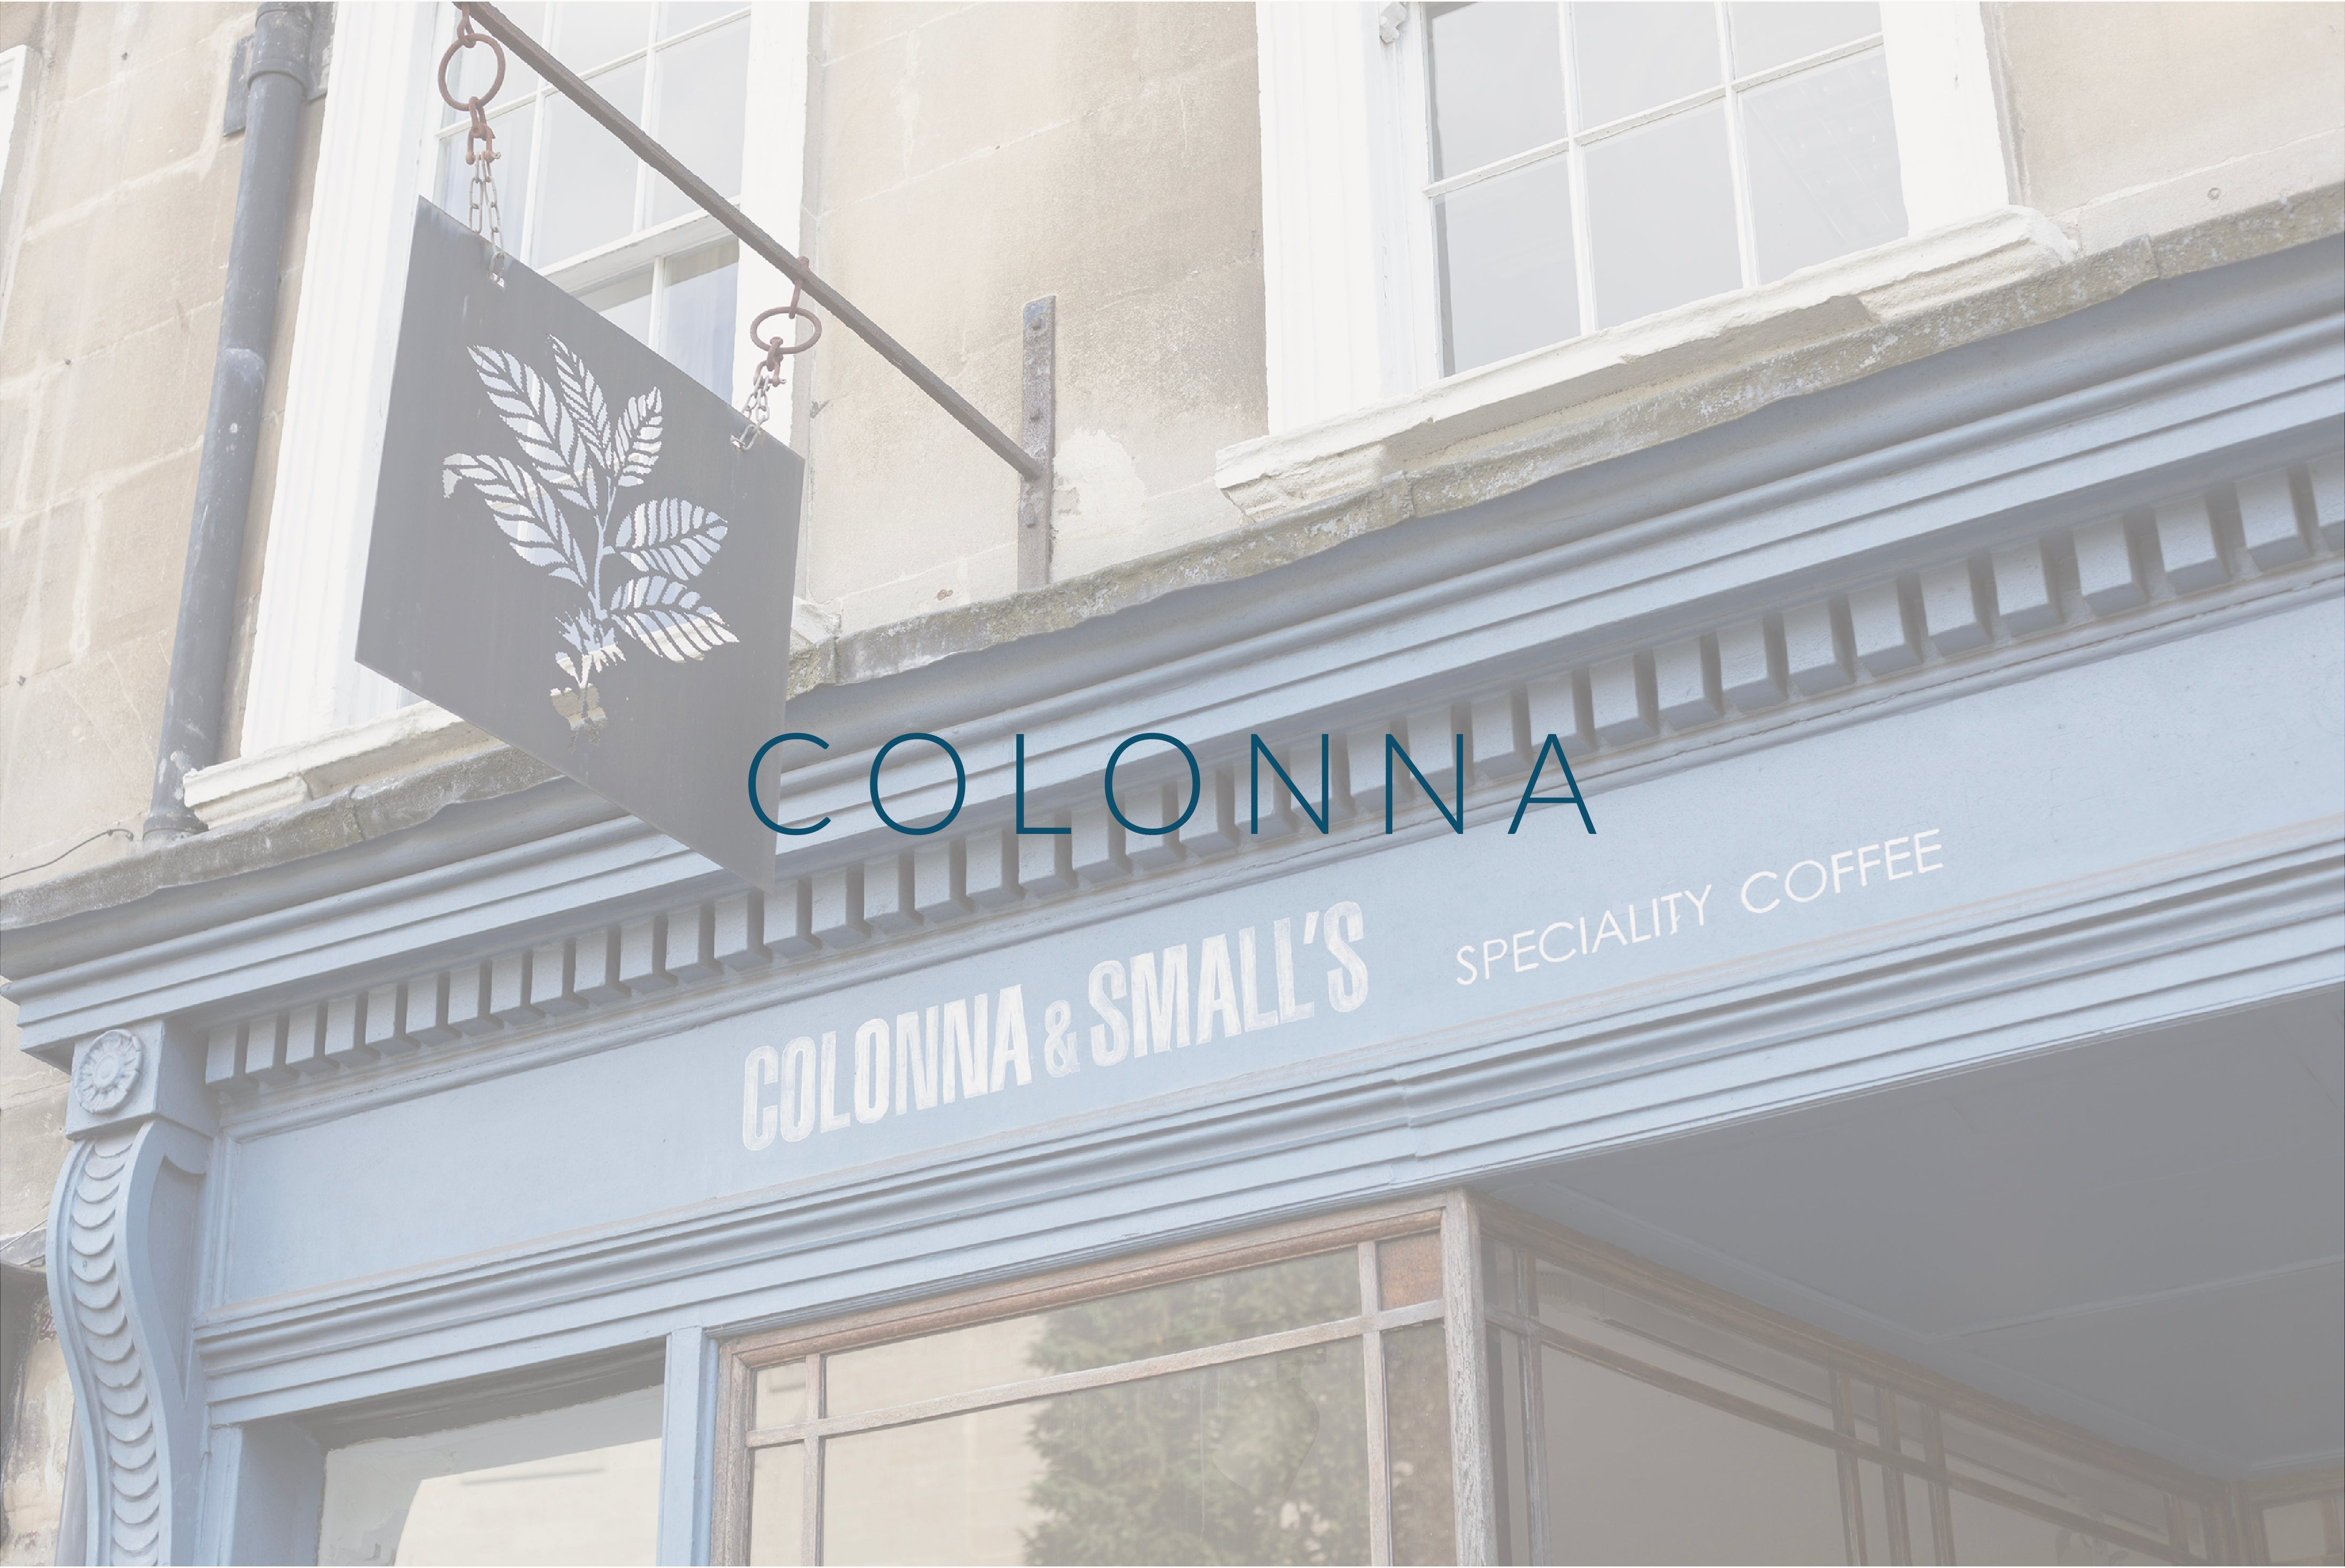 Colonna Coffee Roasters